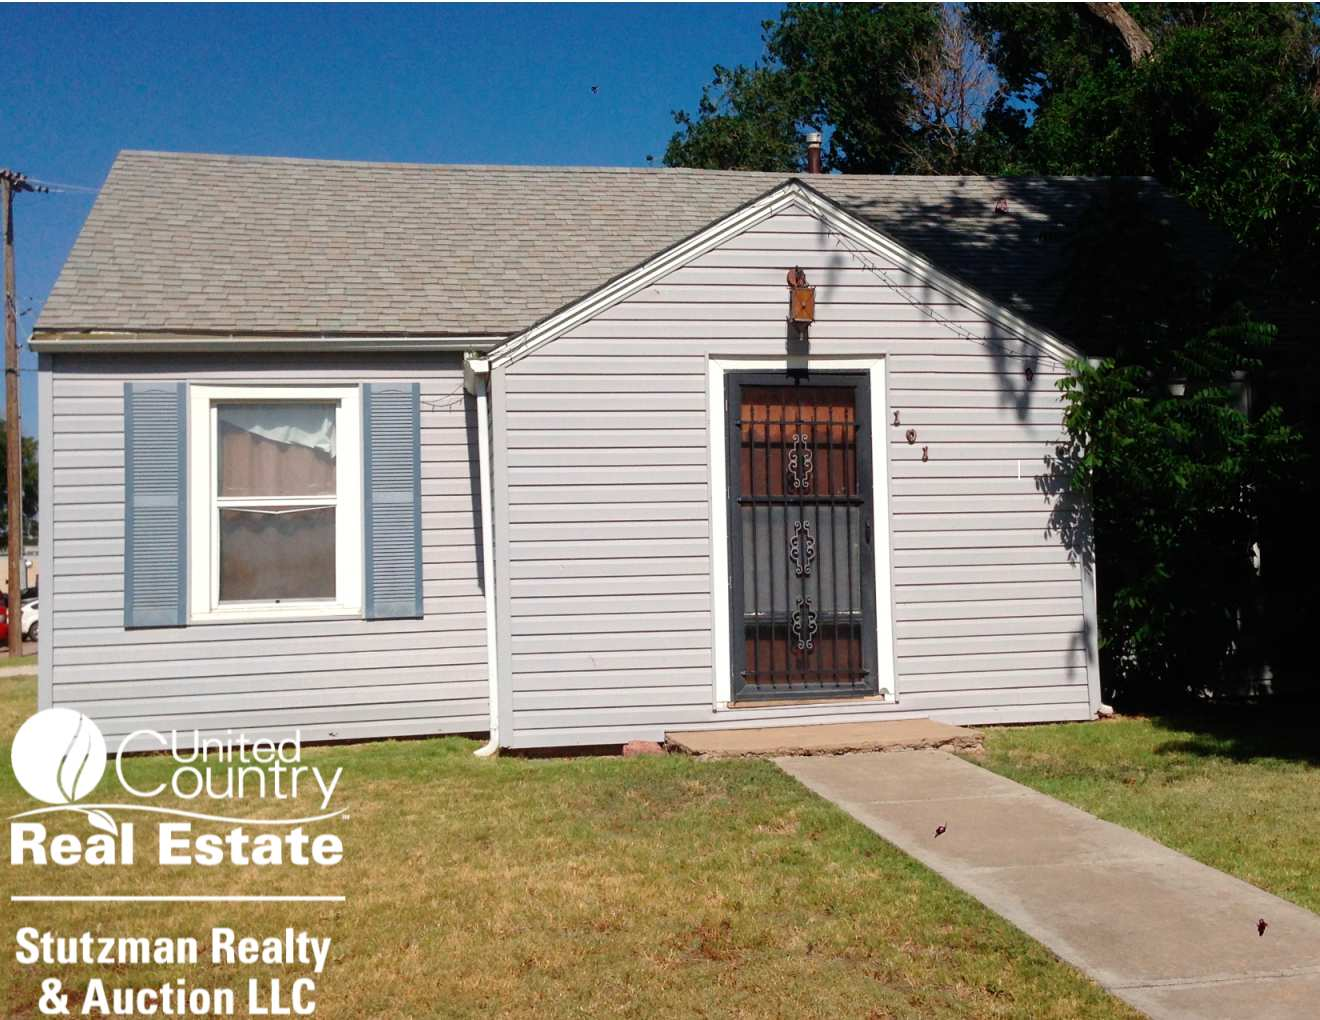 TWO BEDROOM FOR SALE IN ULYSSES, KS